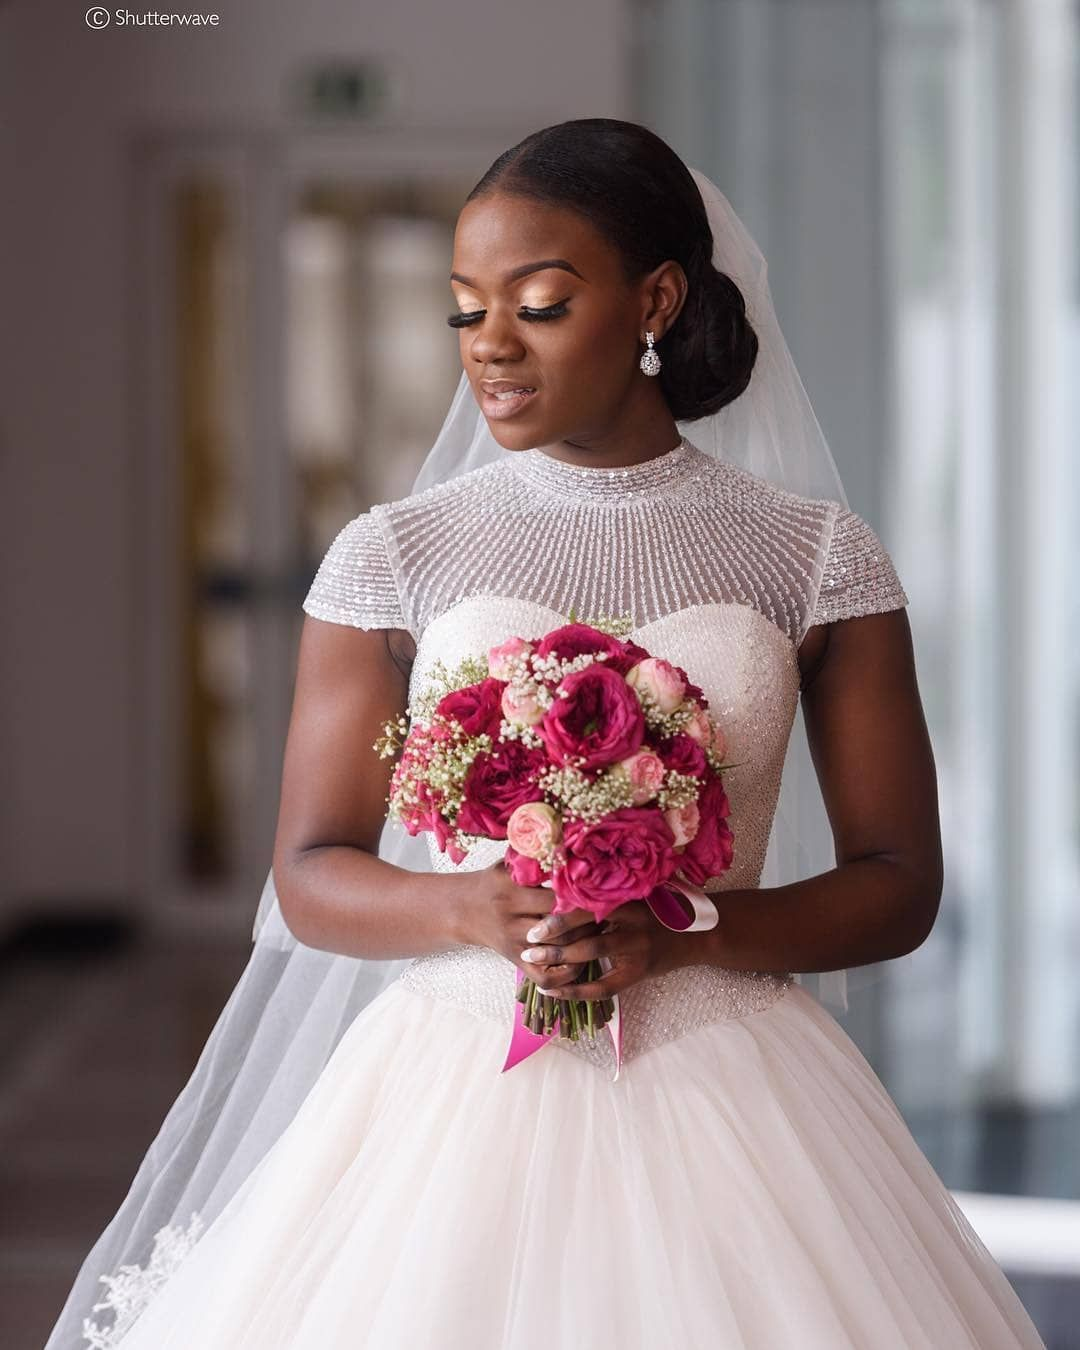 Africa S Top Wedding Website On Instagram So Gorgeous Tomileks Read More Www Bellanaijaweddings Or The Link In Our Bio Bride T0misin Dress